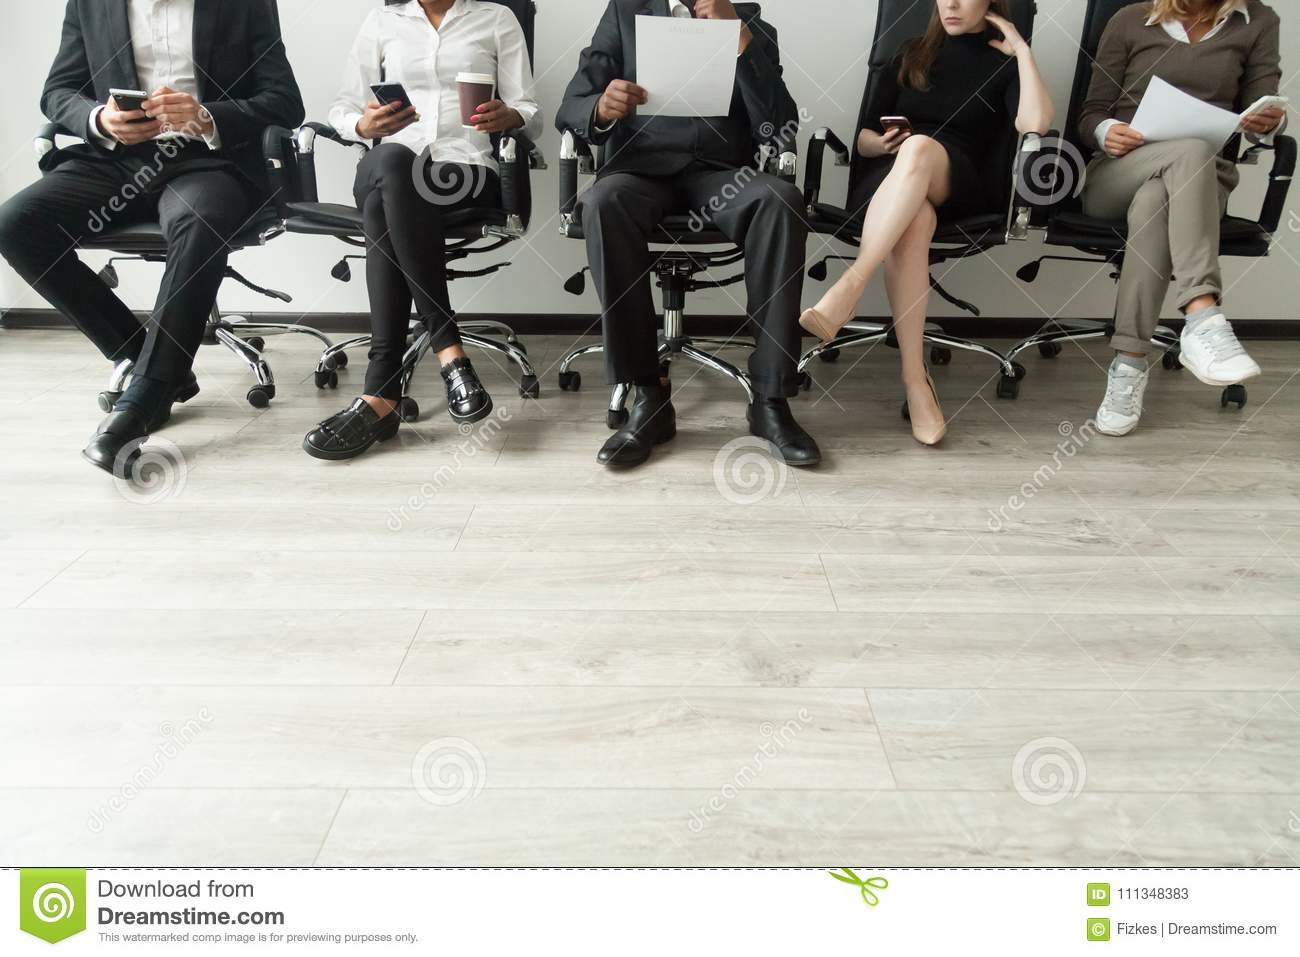 Diverse business people waiting in queue holding smartphones and